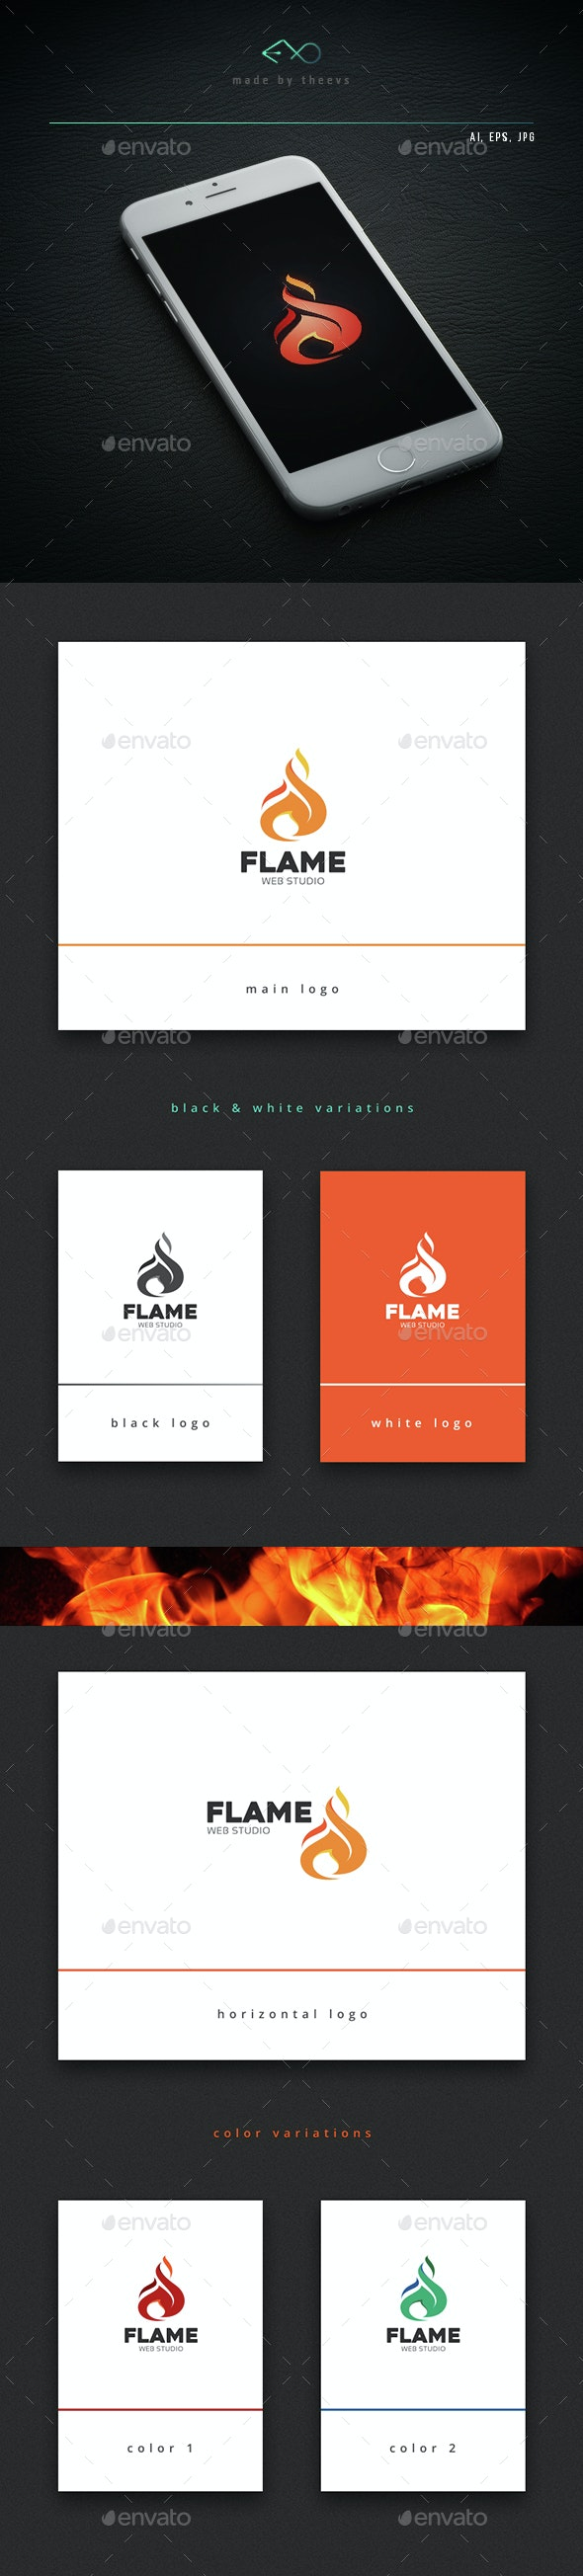 Flame - Vector Abstract